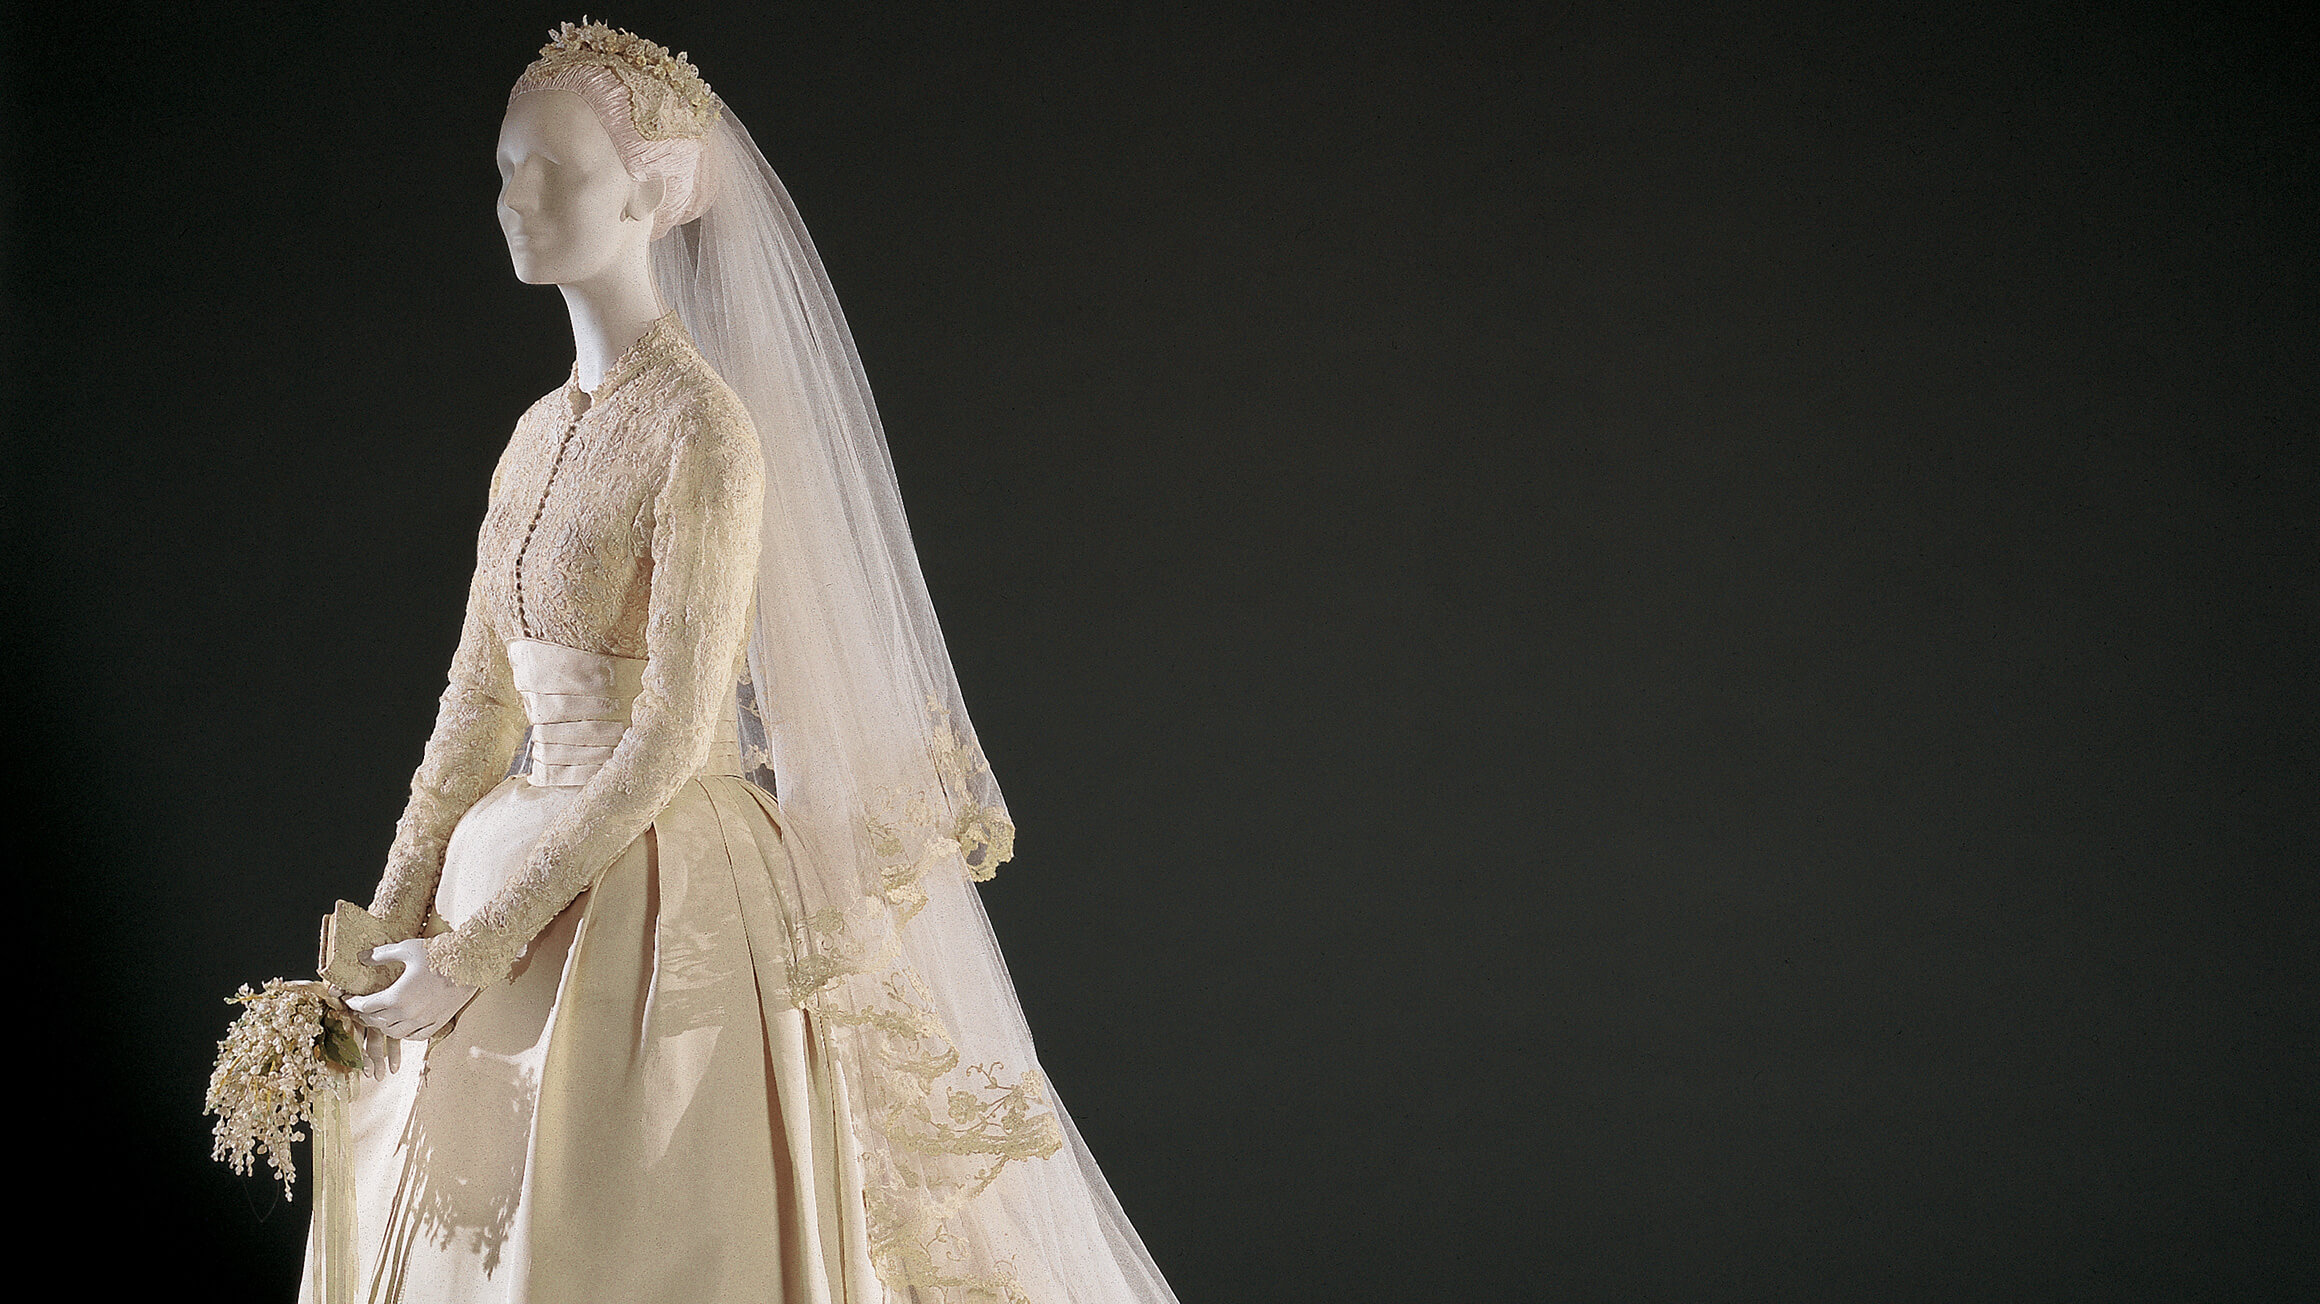 Grace Kelly's Wedding Dress and Accessories (detail), 1956, designed by Helen Rose